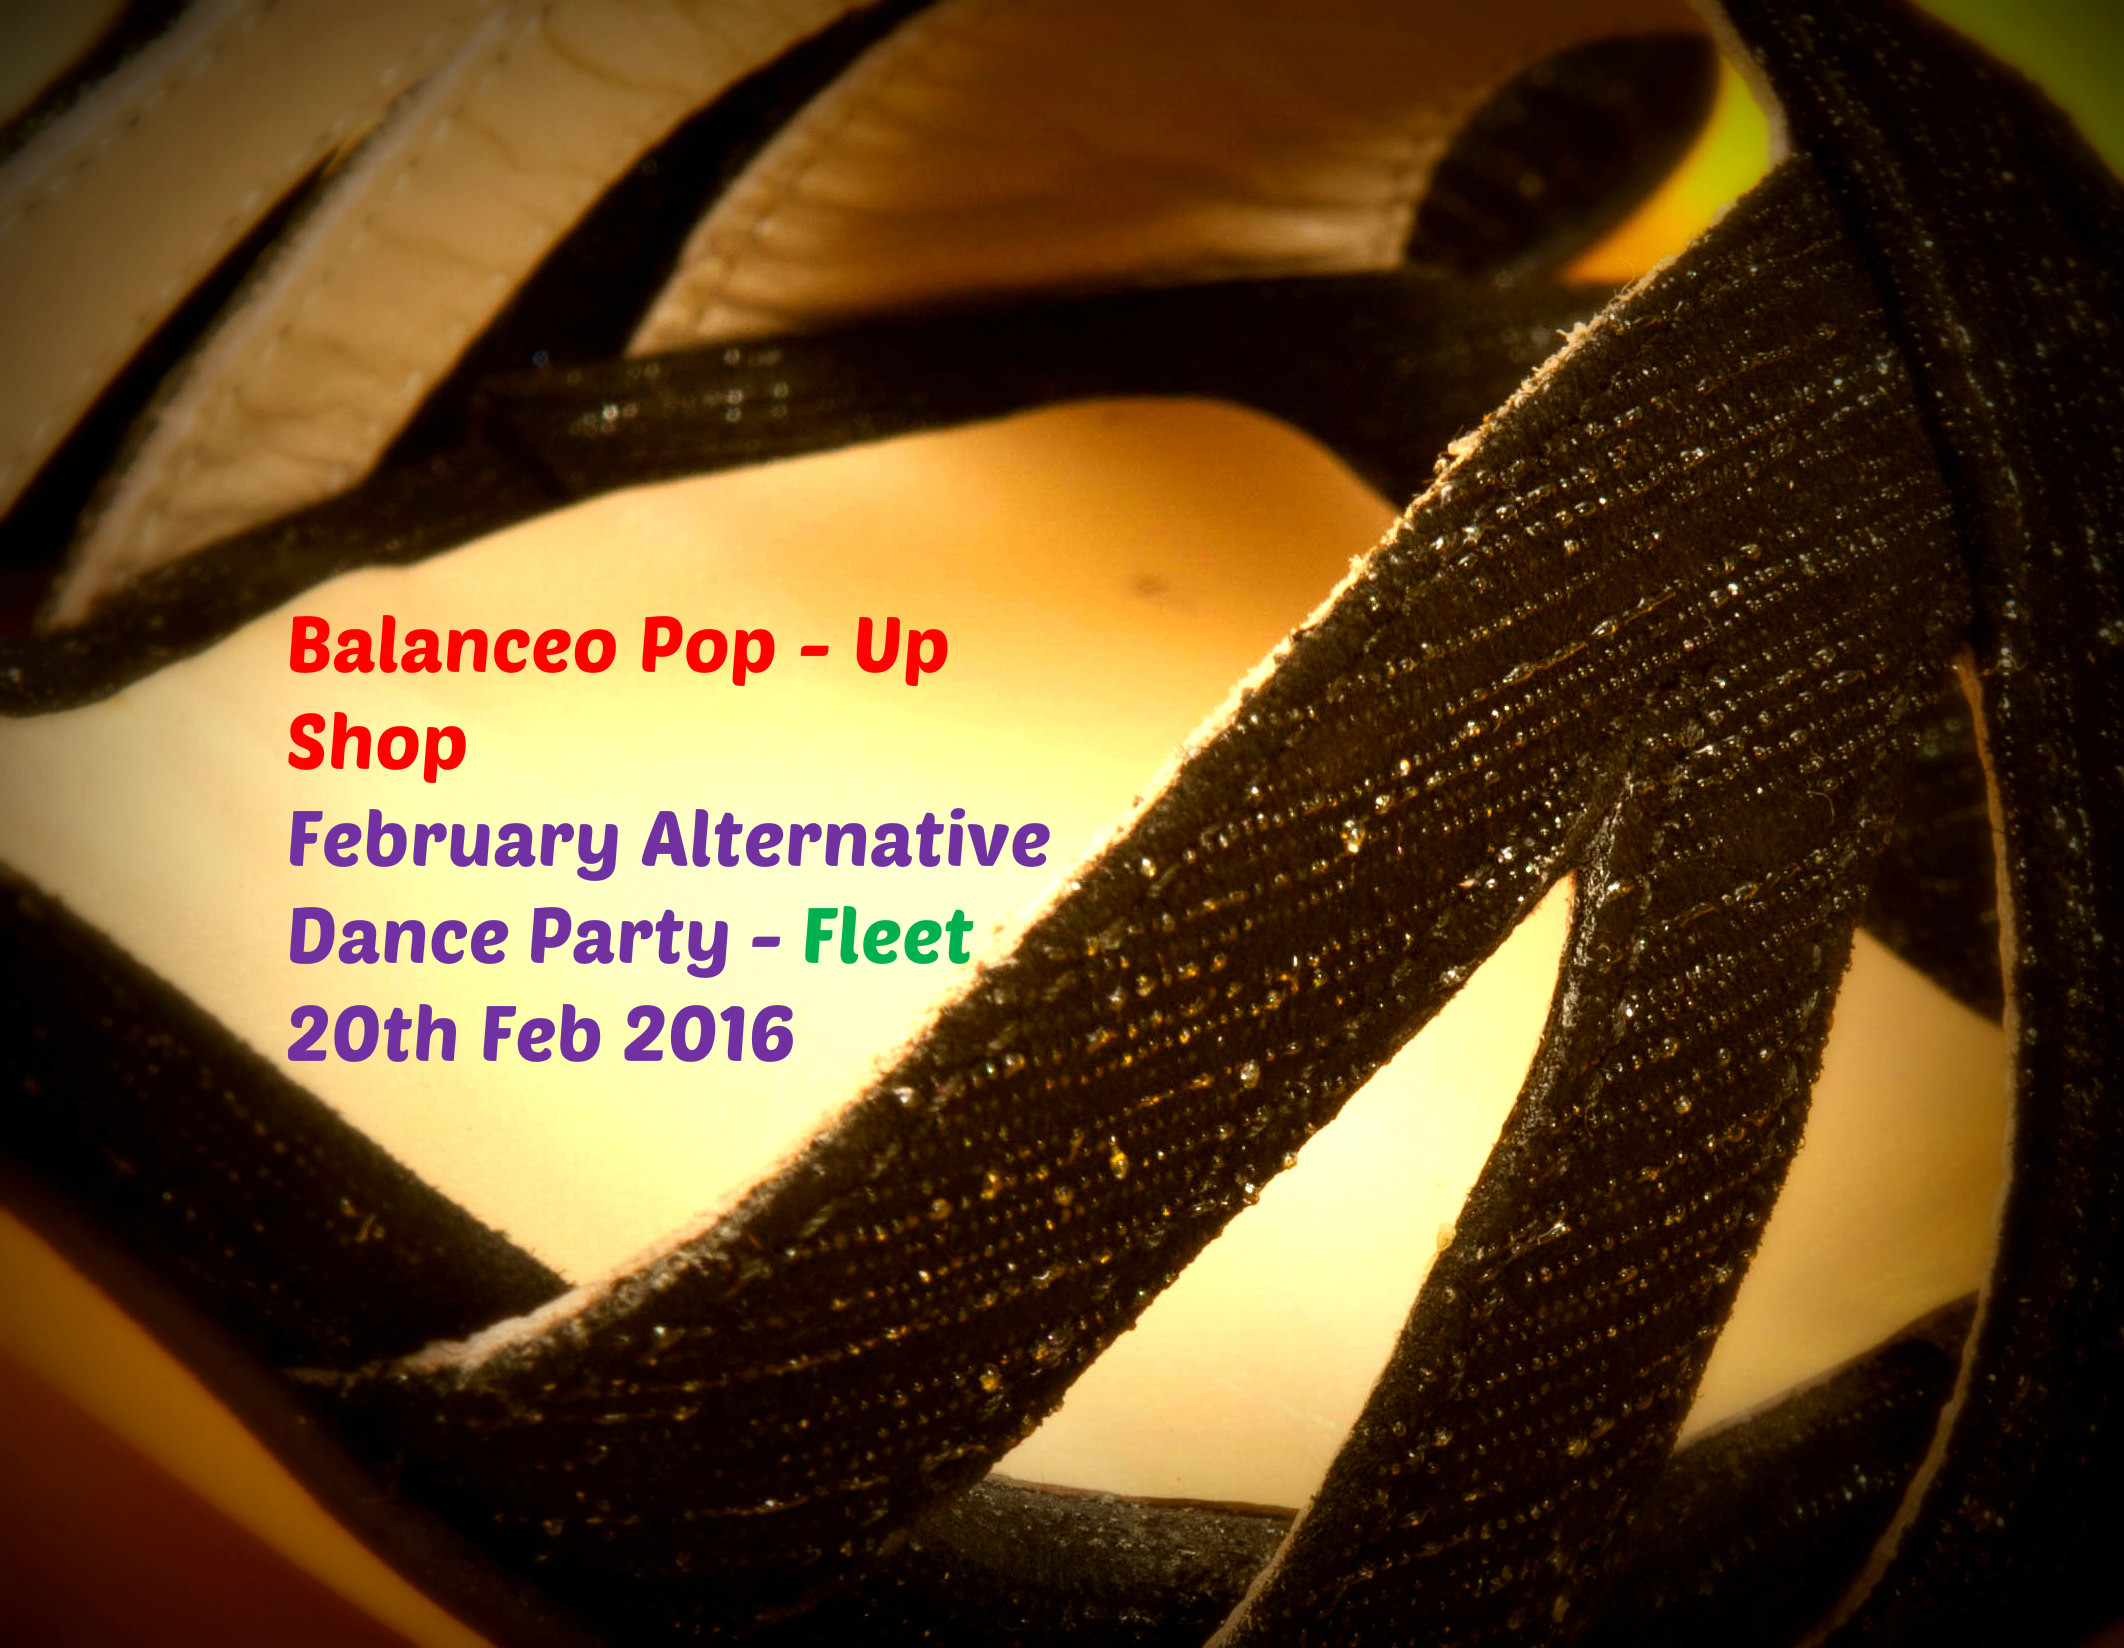 Balanceo Pop – Up Shop @ February Alternative Dance Party – Fleet